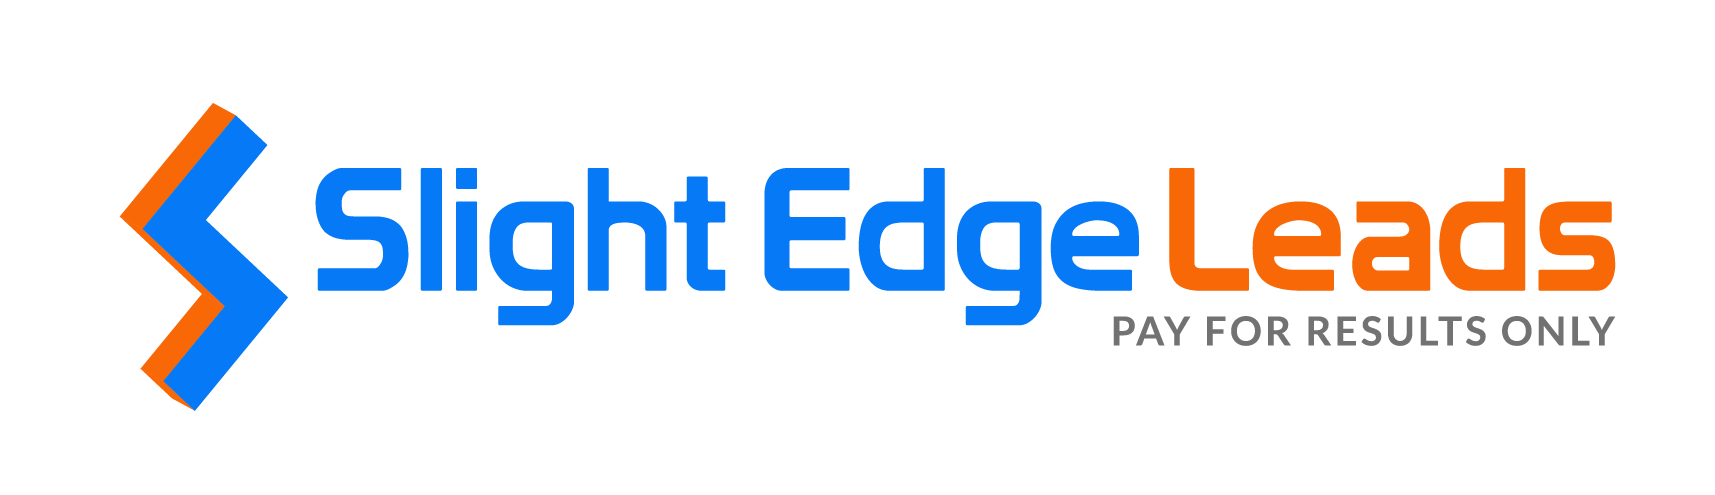 Slight Edge Leads | Pay Per Call